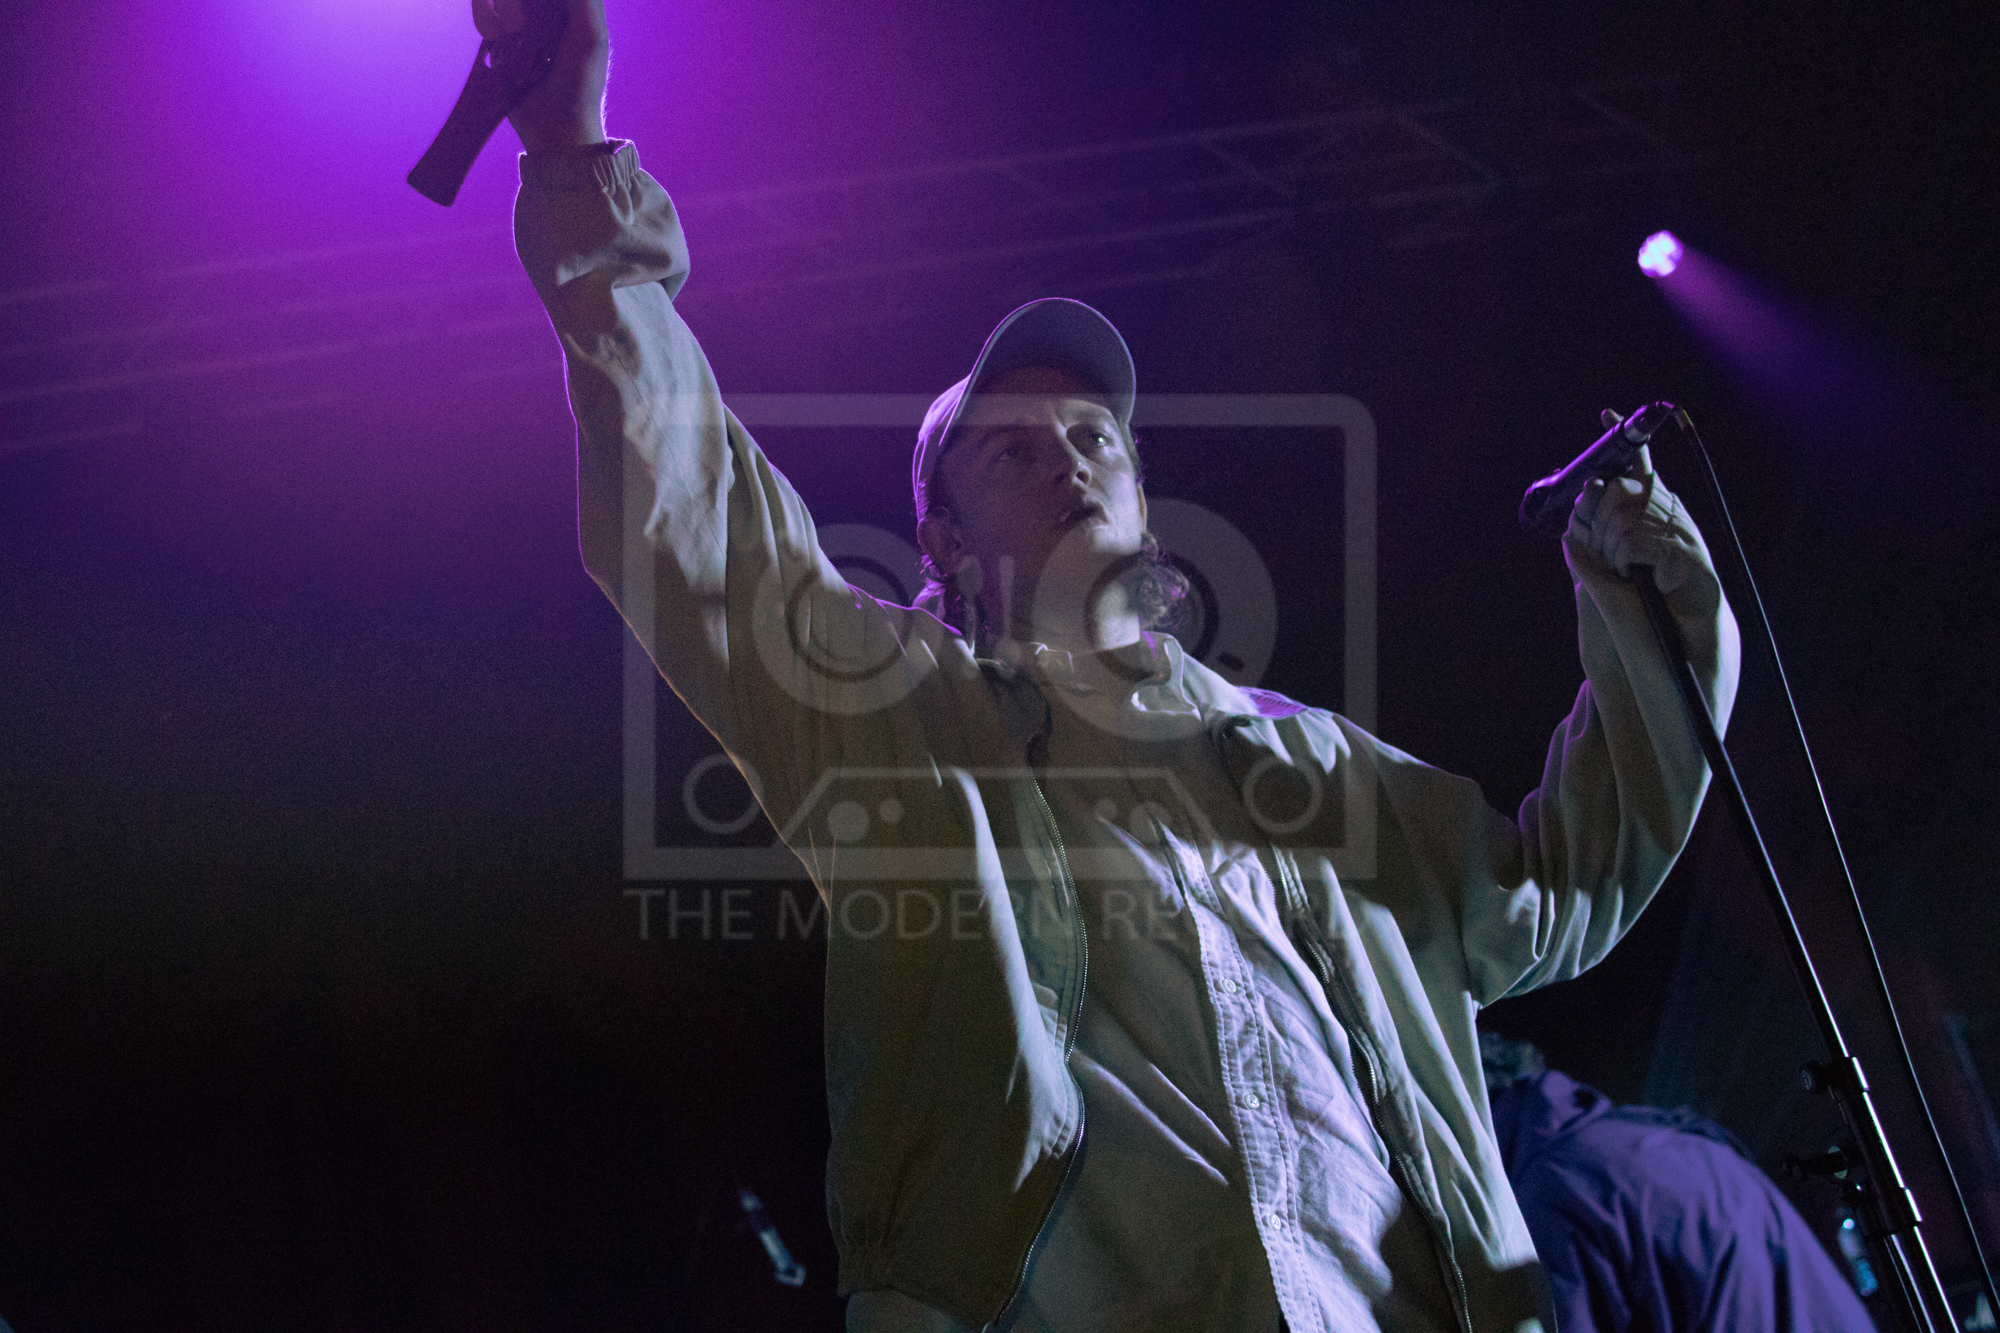 DMA'S PERFORMING AT NEWCASTLE'S O2 ACADEMY - 10.04.19  PICTURE BY: WILL GORMAN PHOTOGRAPHY